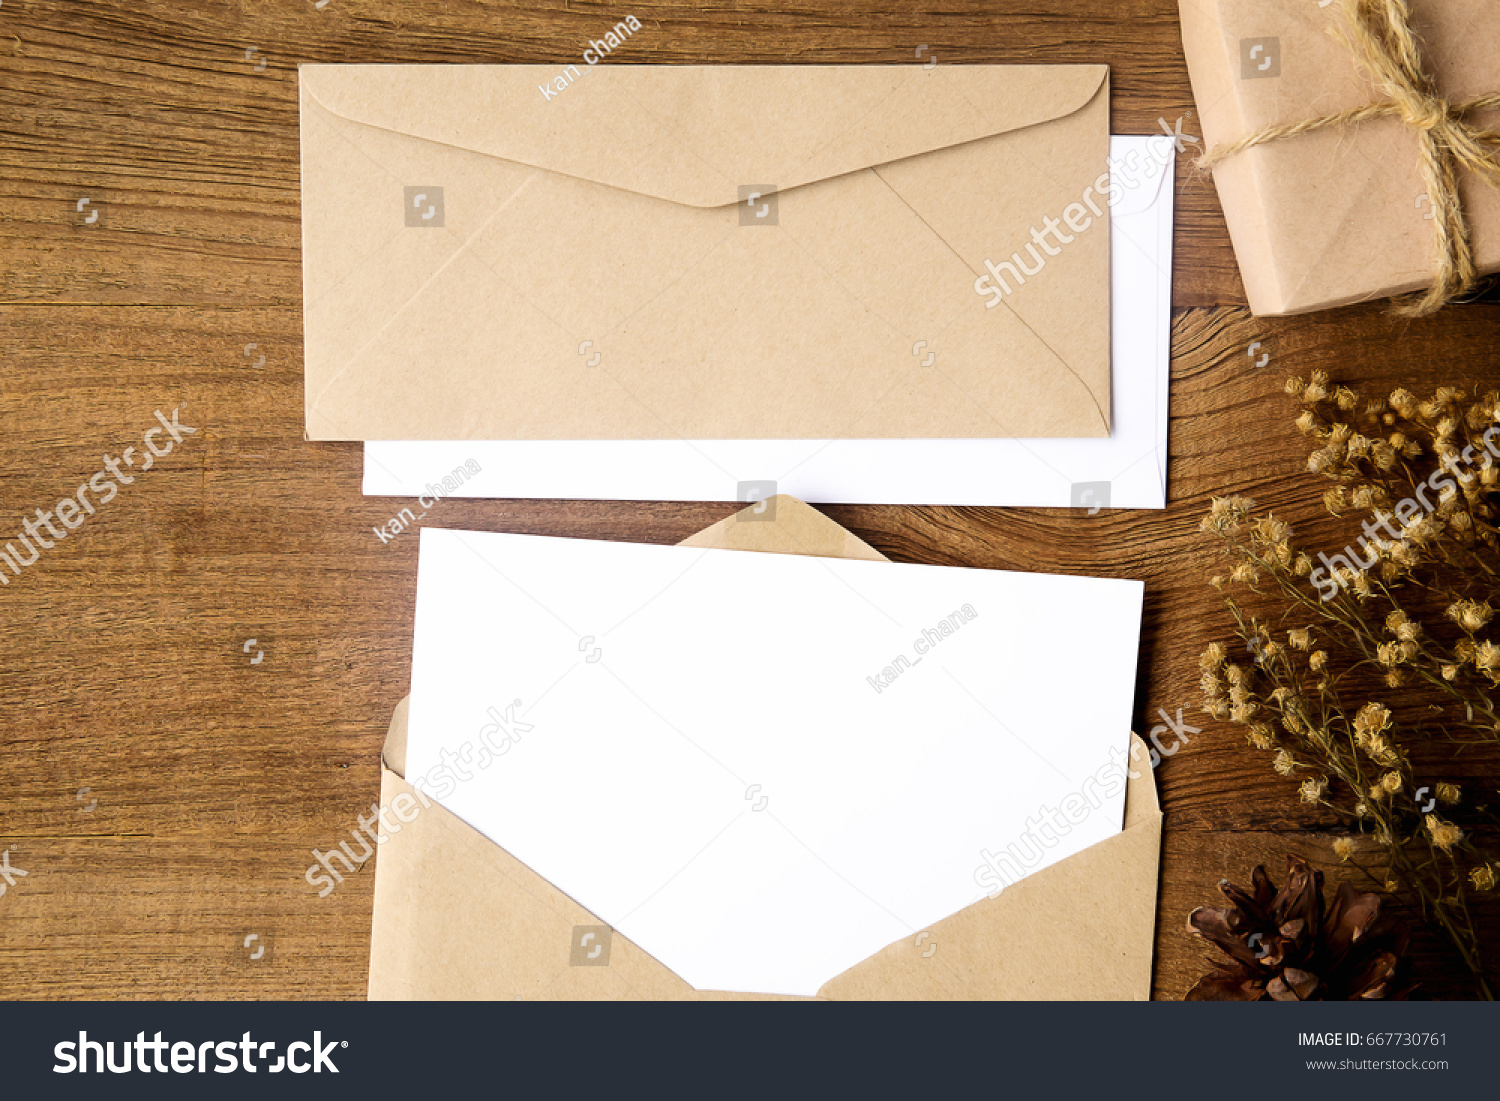 Top View Of Envelope And Blank Greeting Card With Rose Flowers On